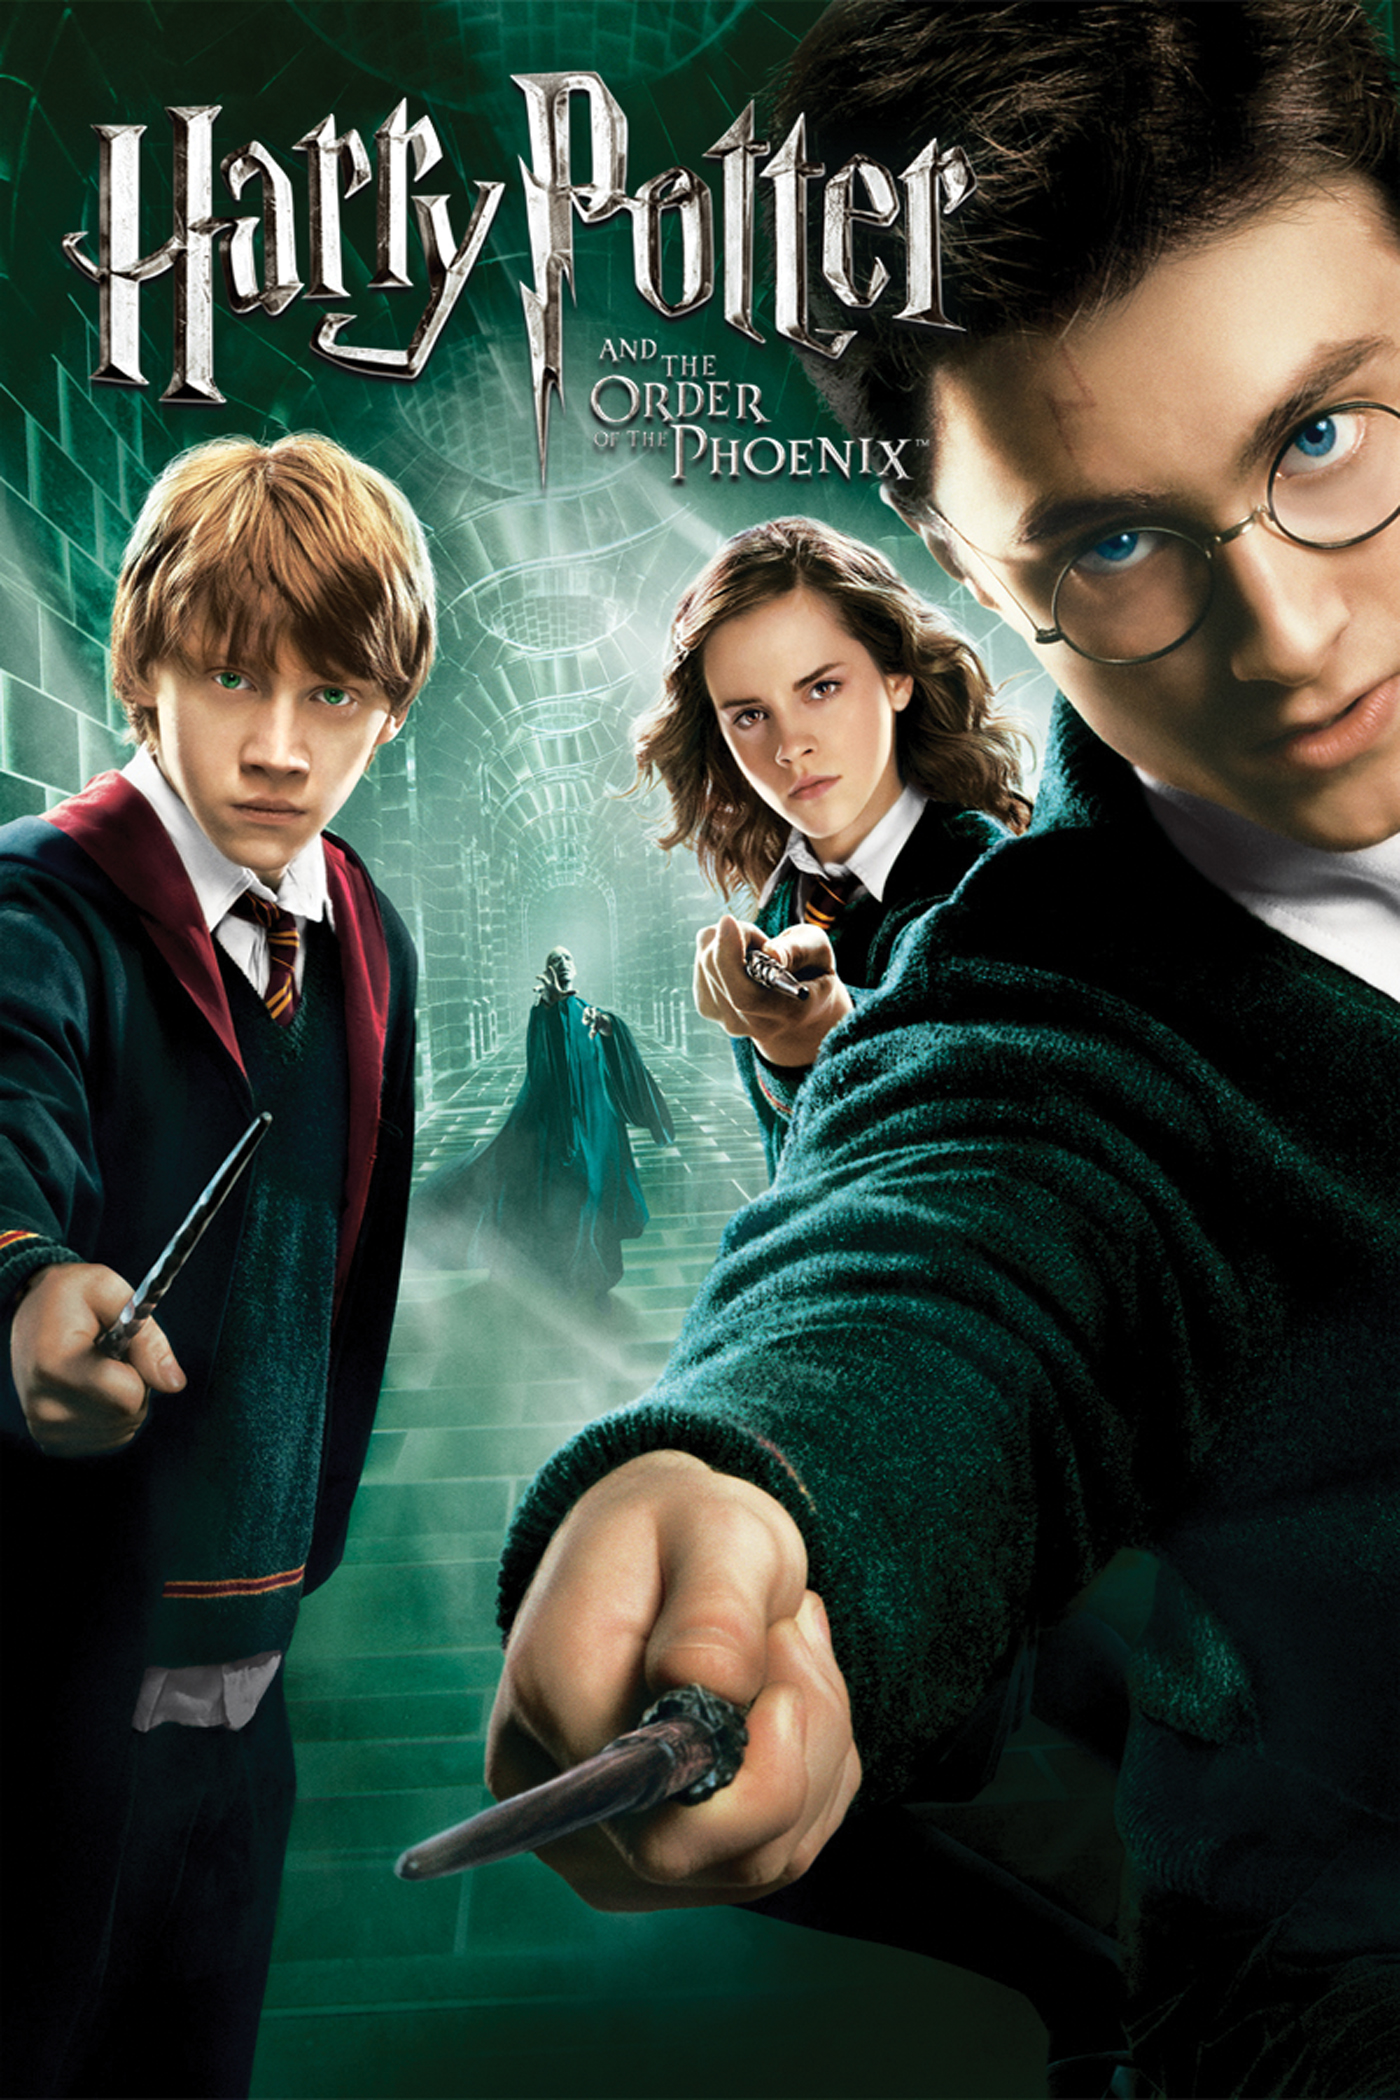 Harry potter and the order of the phoenix short summary